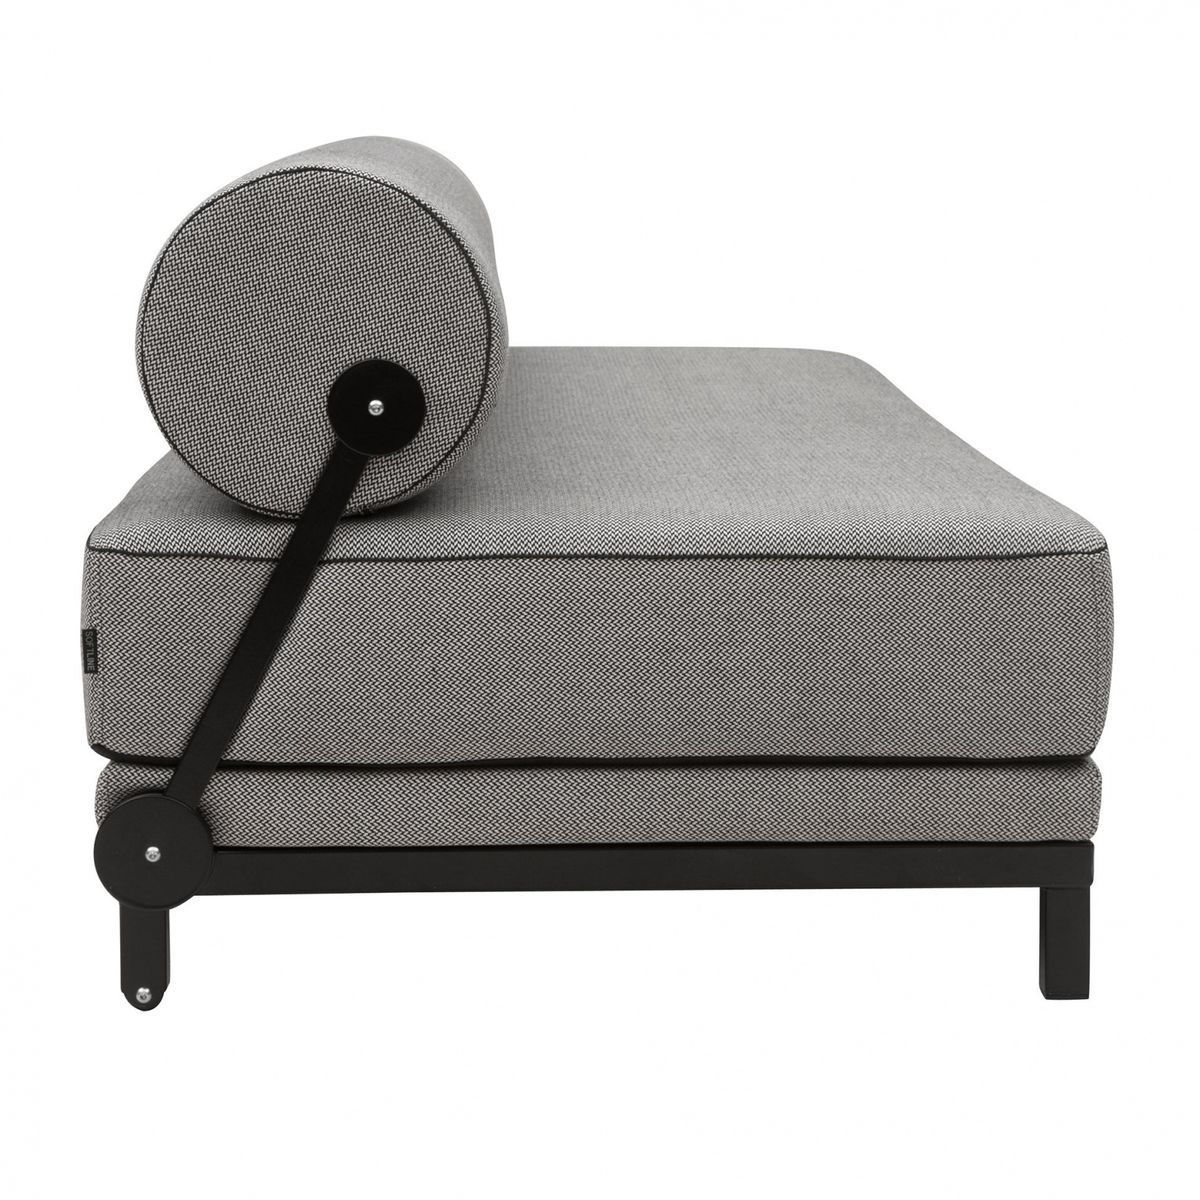 Sleep Day Bed / Sofa Bed Sofa bed, Sofa, Daybed